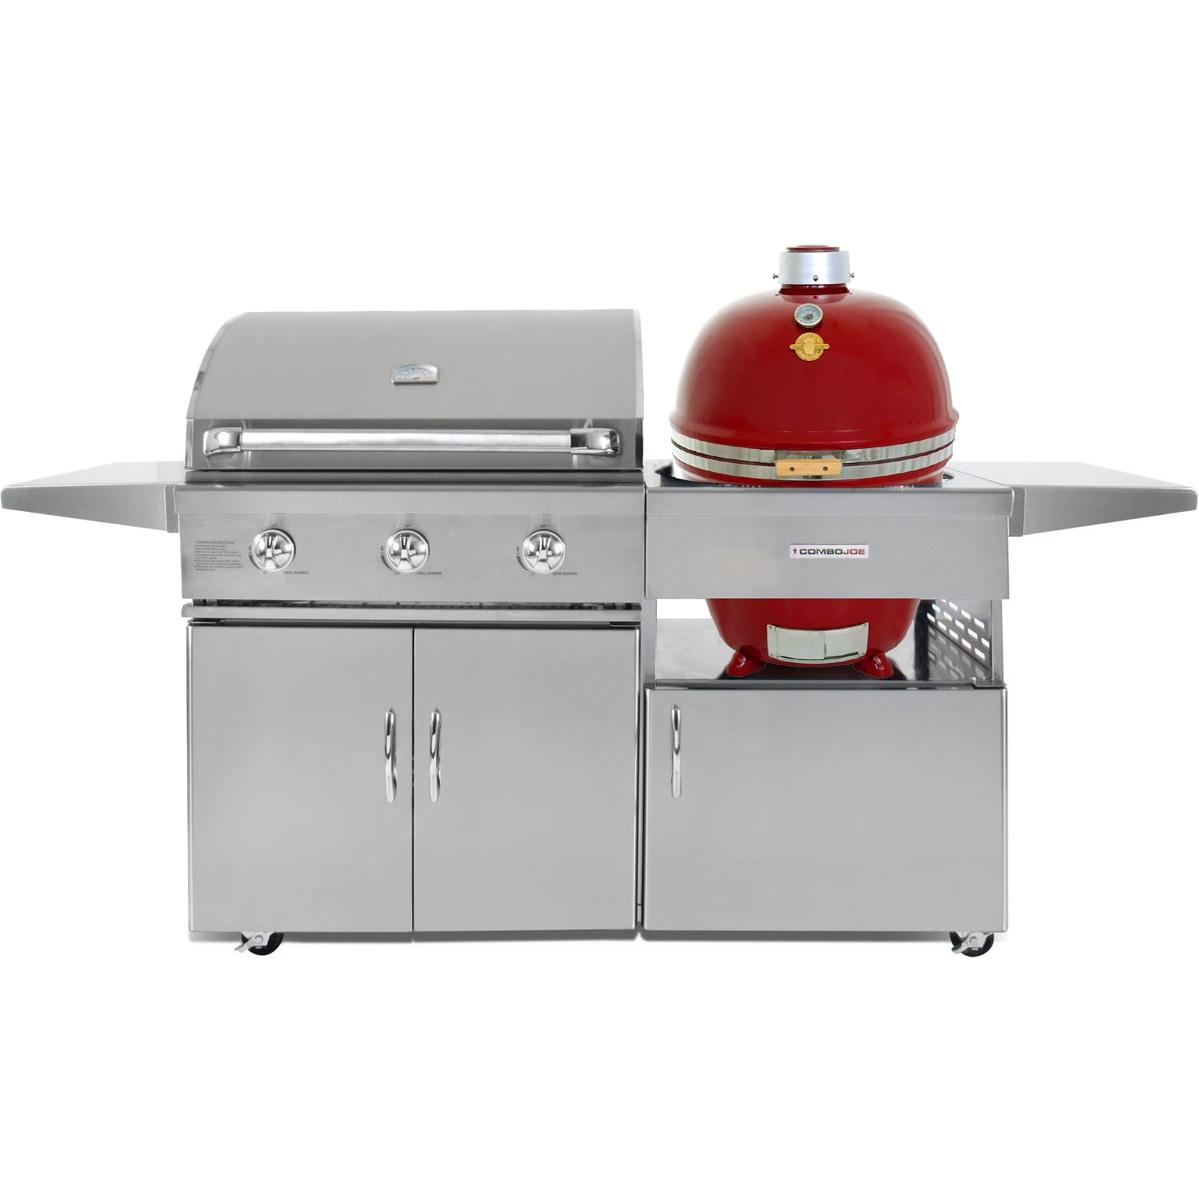 Grill Dome Infinity Series Red Kamado And 32-Inch Natural Gas Grill On Cart, Discount ID GJ32S-NG CGJ32C GDL-RD